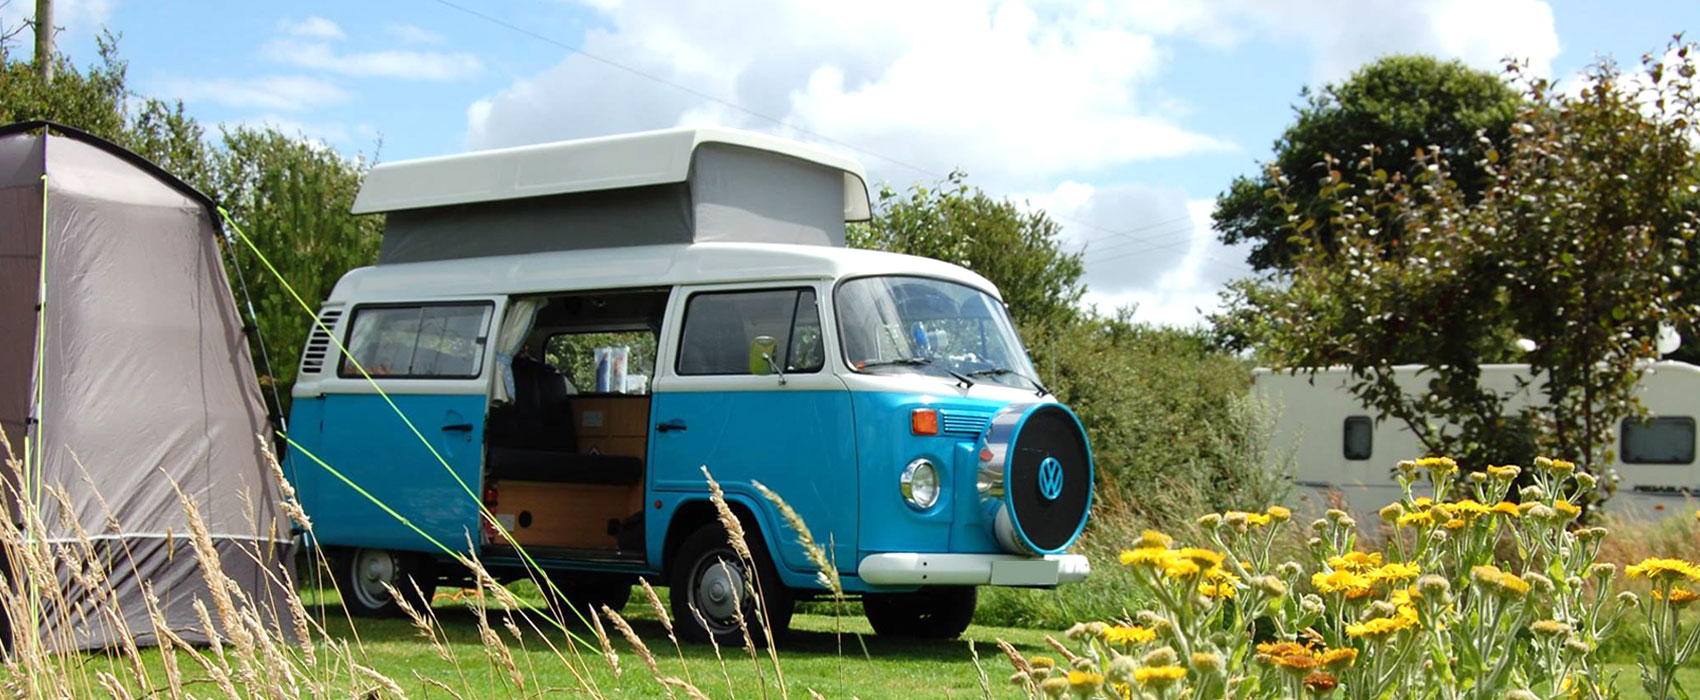 Book Your VW Campervan Hampshire Experience